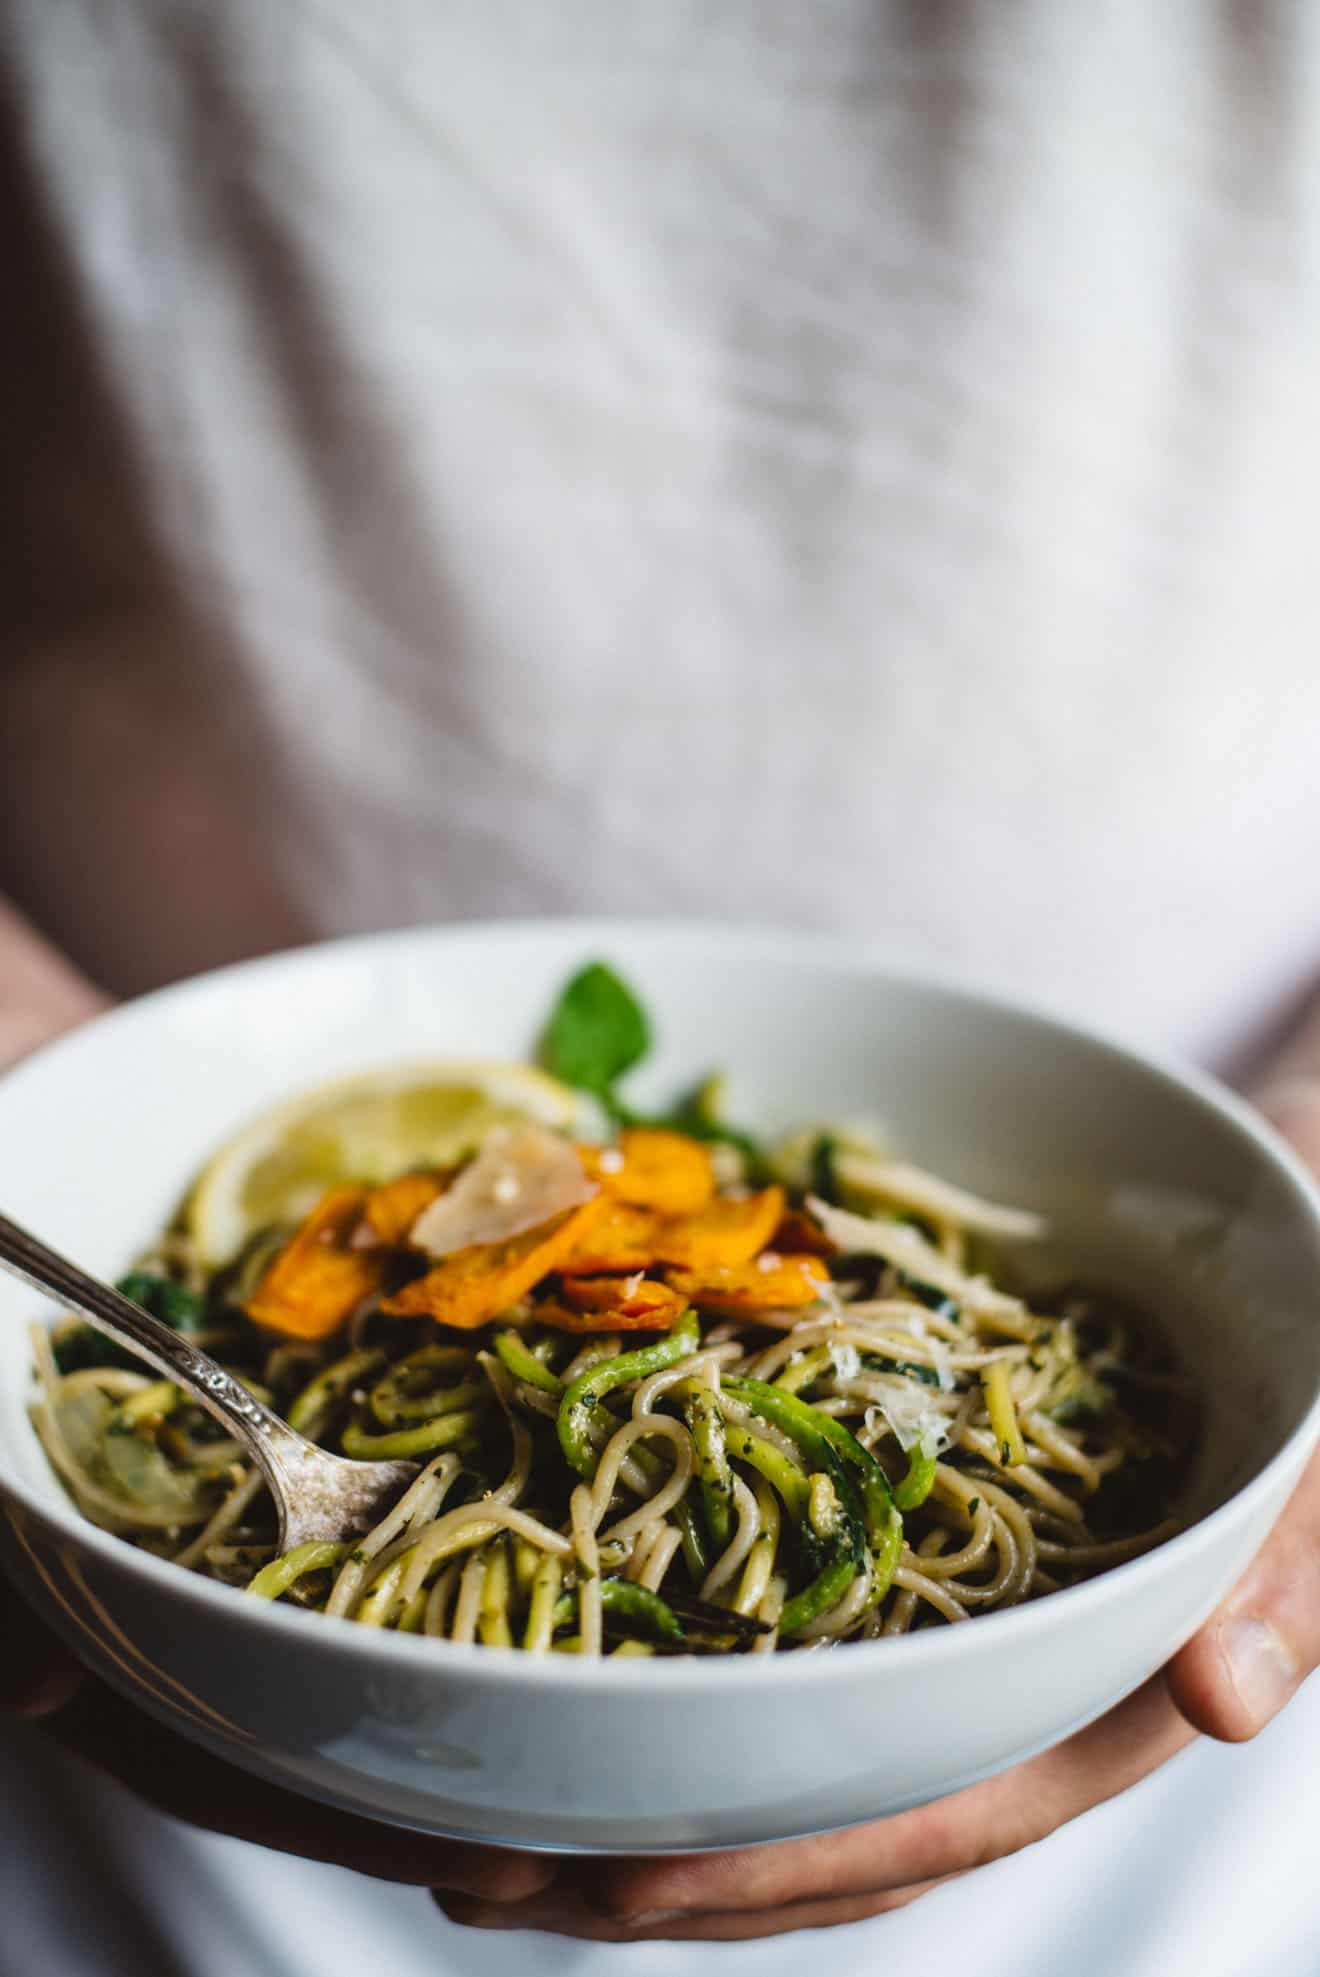 Carrot Top Pesto Pasta with Zucchini Noodles - easy gluten-free, vegetarian dinner in 30 minutes! by @healthynibs